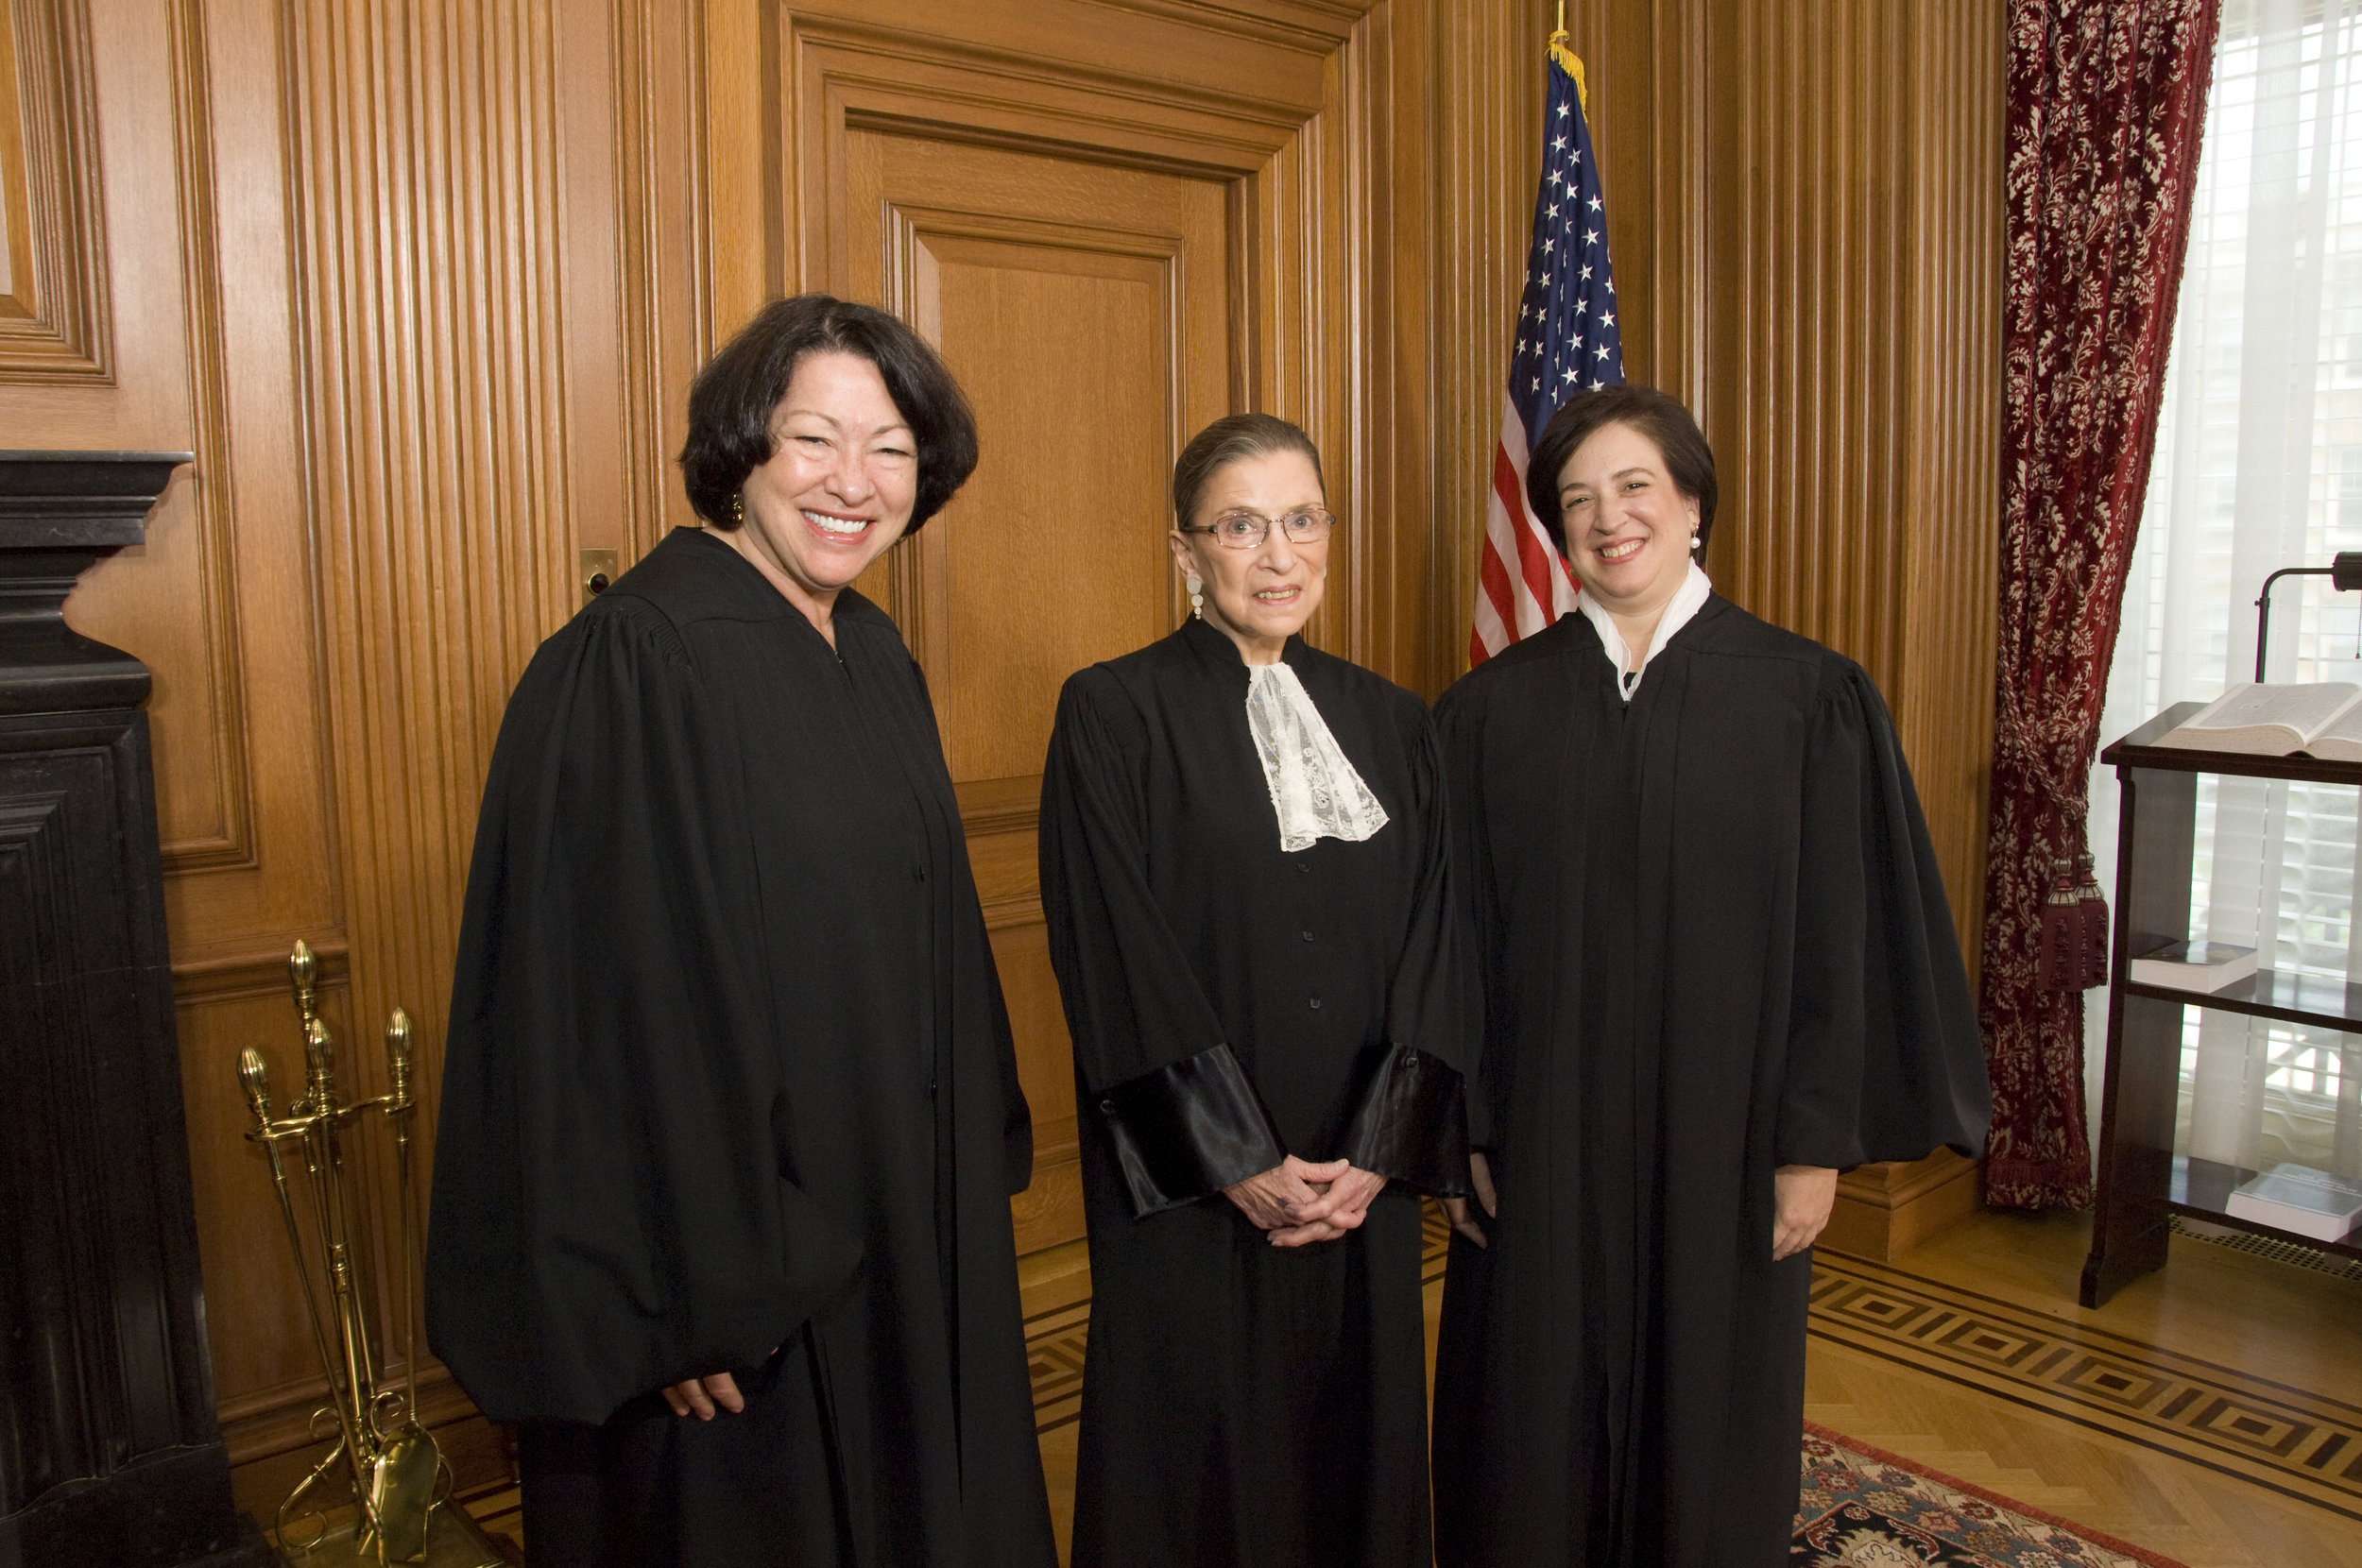 Sotomayor,_Ginsburg,_and_Kagan_10-1-2010.jpg